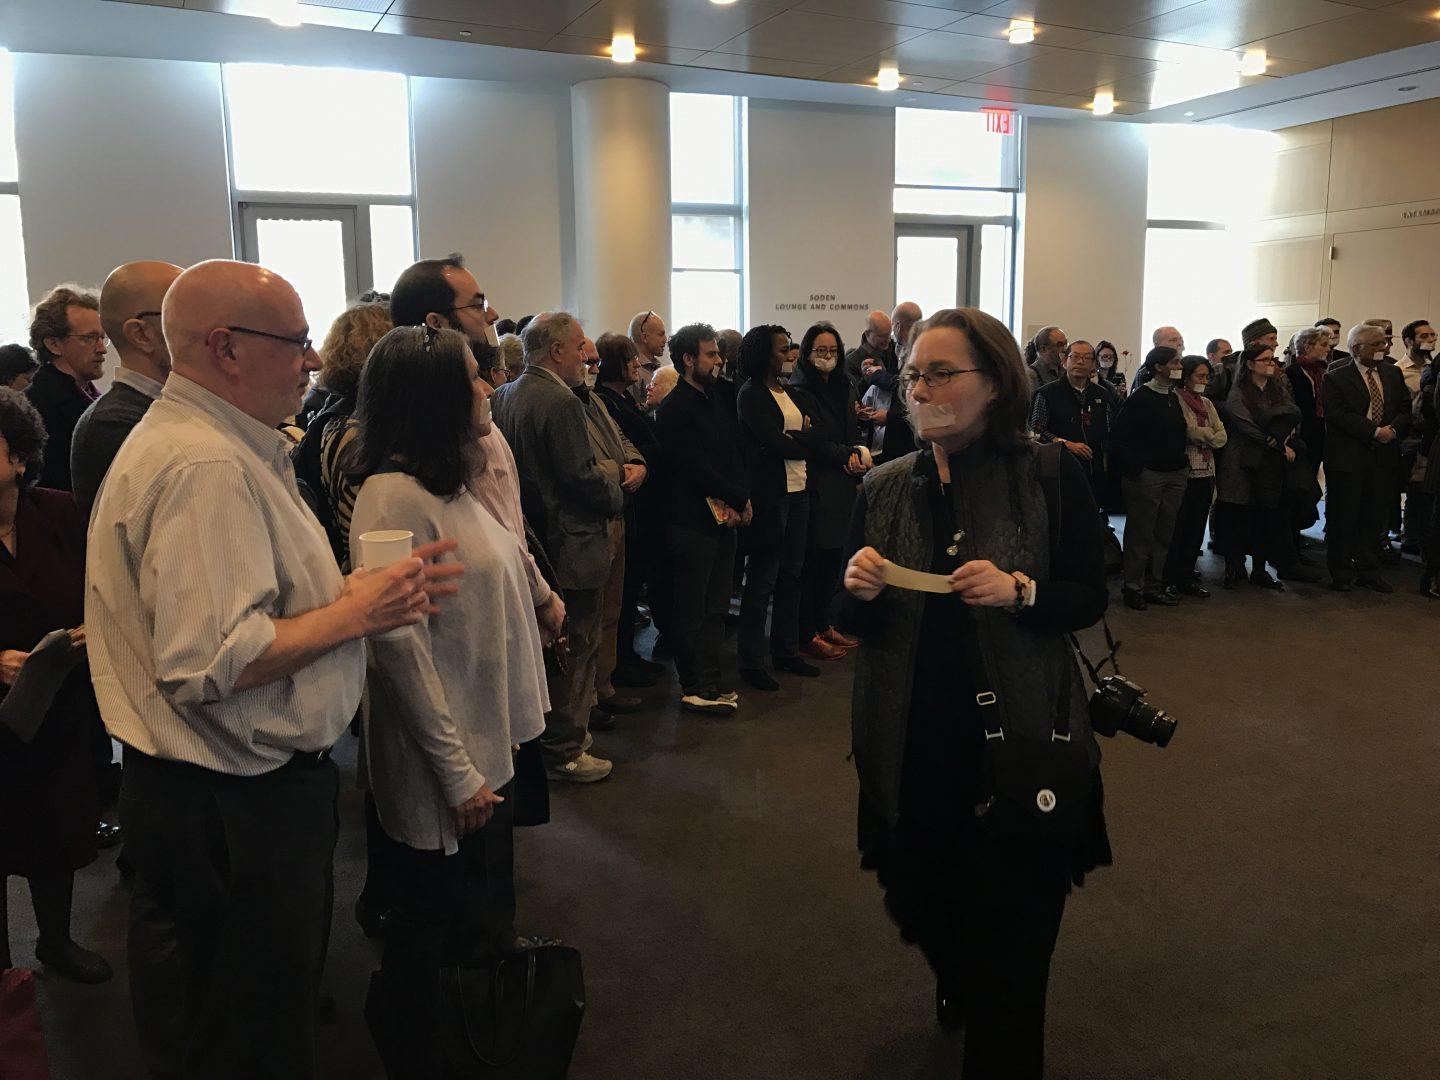 Over+100+faculty+members+holding+a+silent+protest+over+statutes+violations+outside+of+the+Board+of+Trustees+lunch+in+the+Bateman+Room+of+the+Fordham+Law+building.